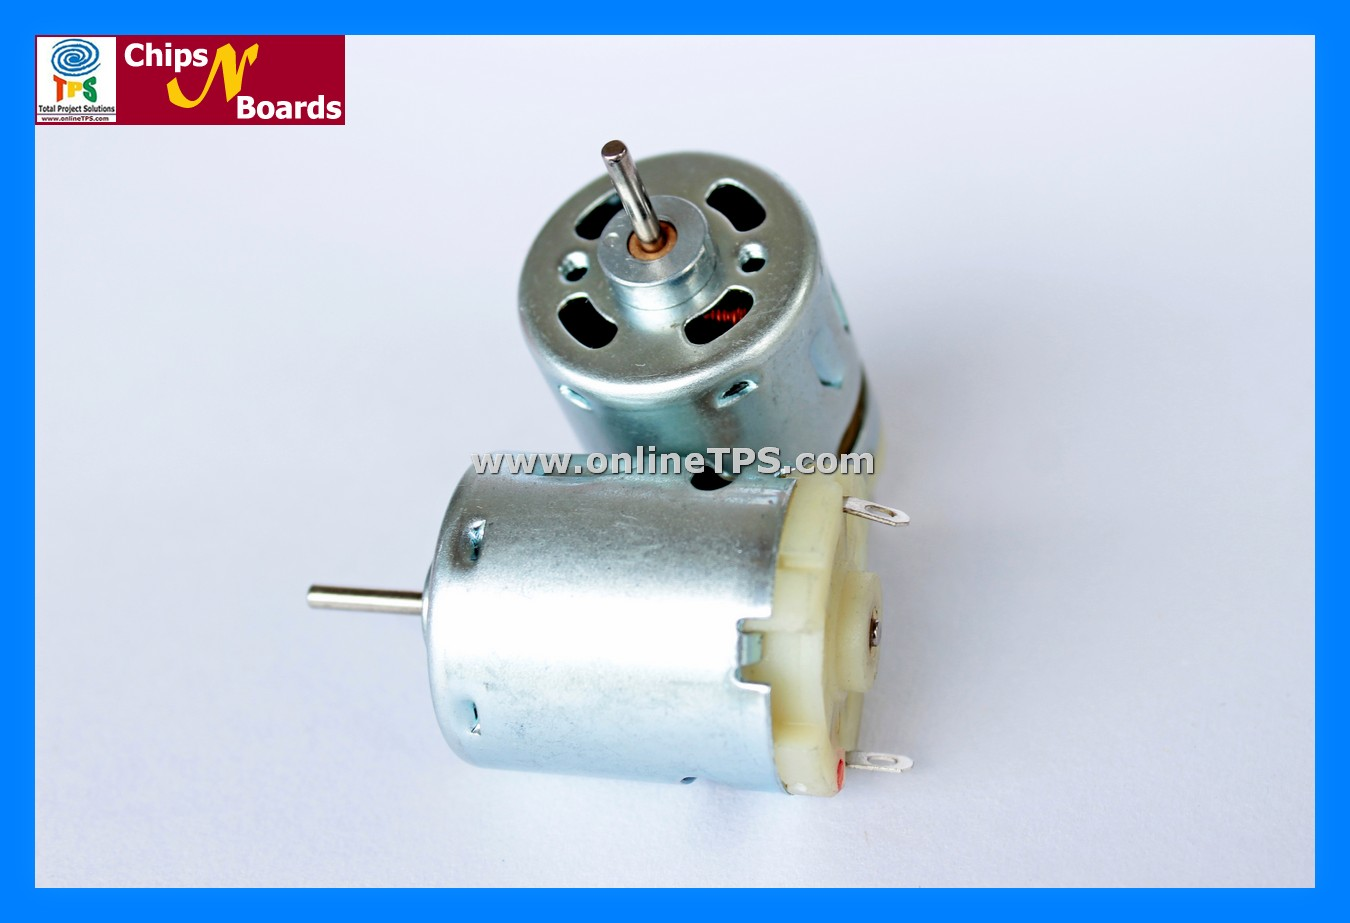 Chips N Boards Pmdc 12v High Rpm High Torque Motor And